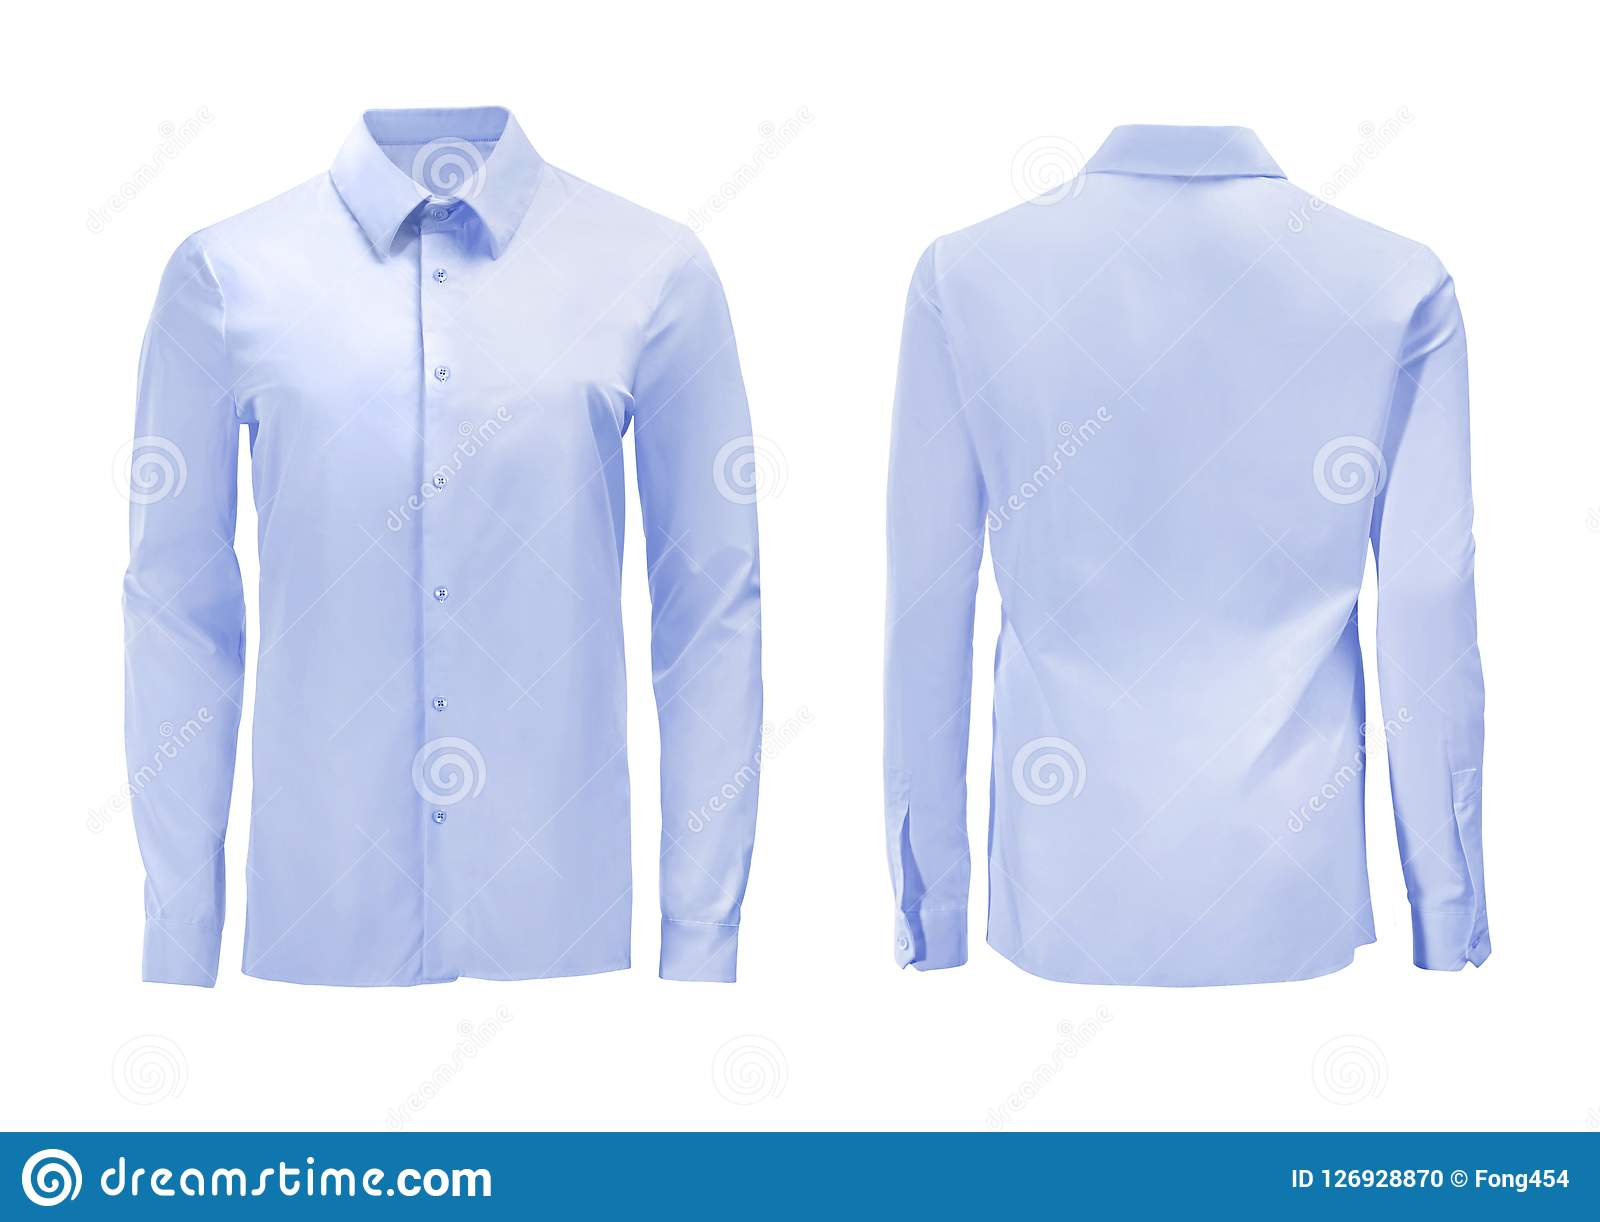 Blue color formal shirt with button down collar isolated on whit